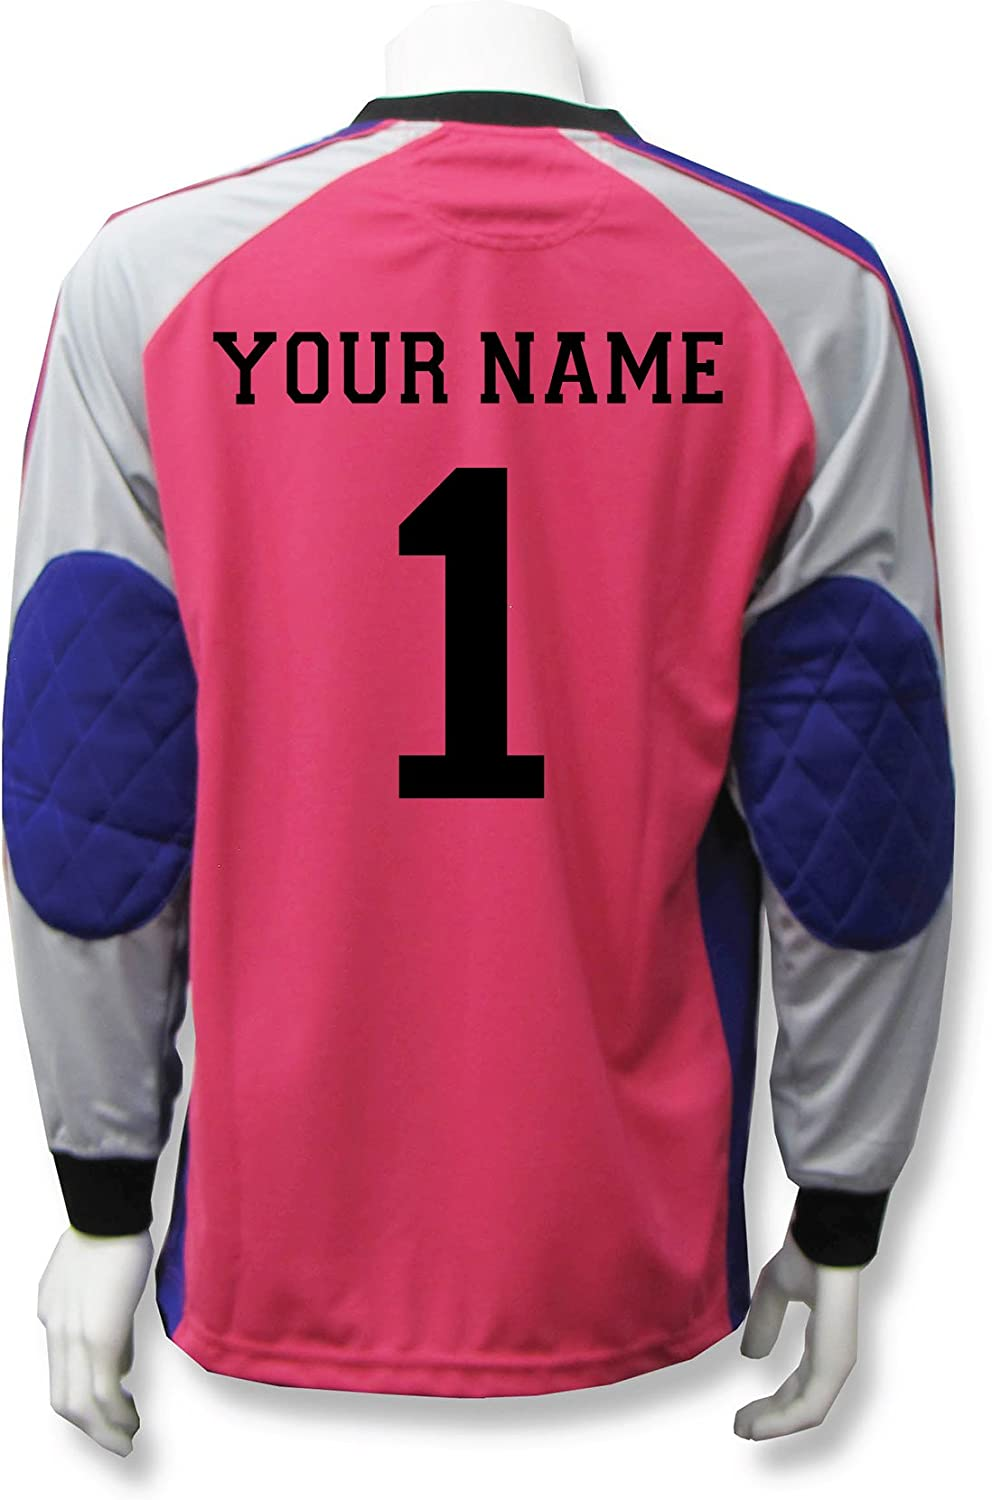 Long-Sleeve Soccer Goalkeeper Jersey Personalized with Your Name and Number